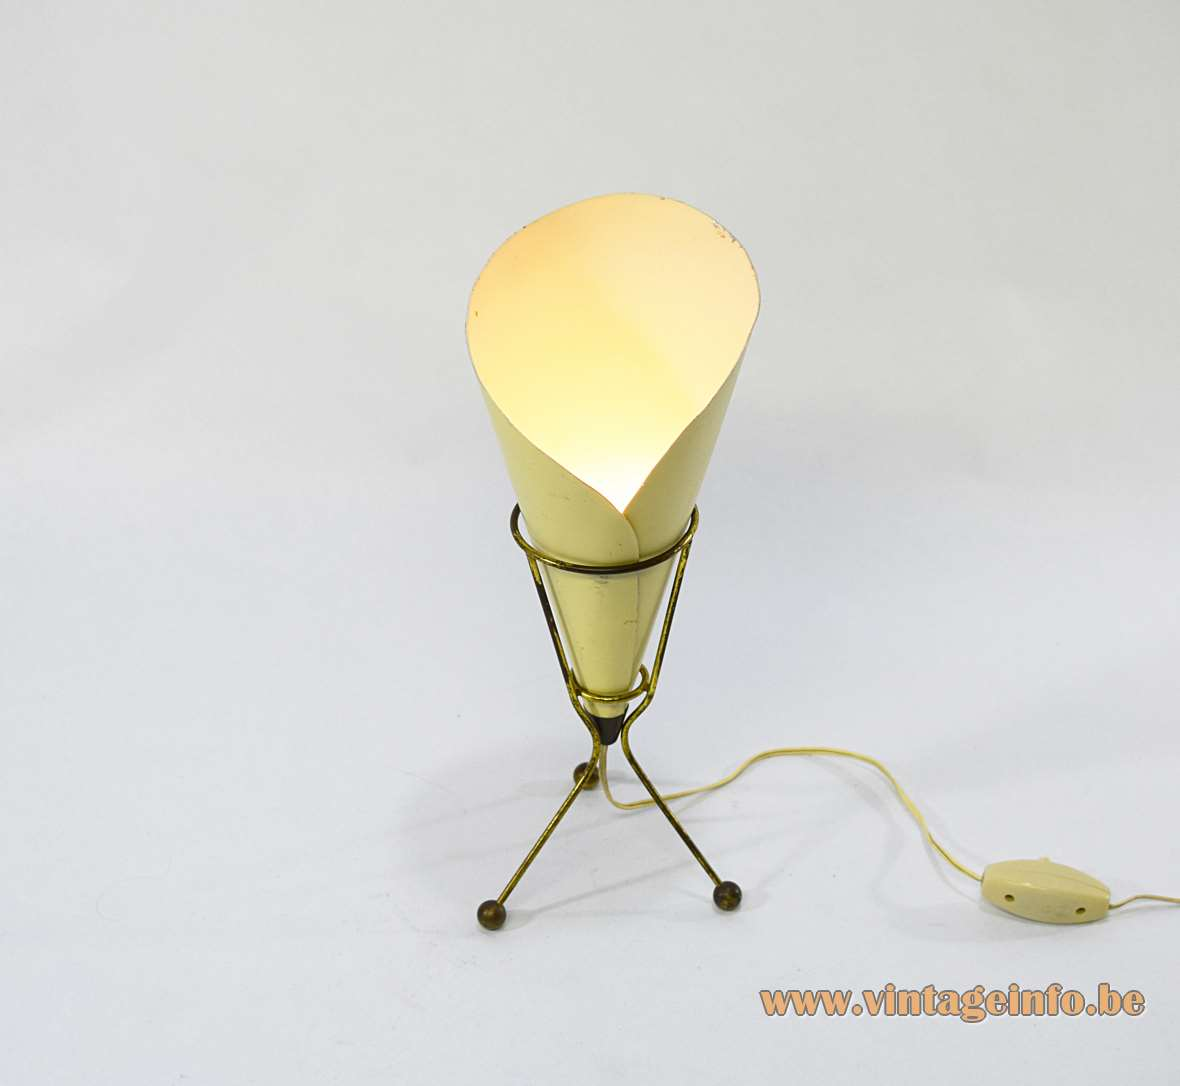 Calla table lamp tripod pale yellow conical chip bag lily flower lampshade 1950s 1960s Italy MCM Mid-Century Modern